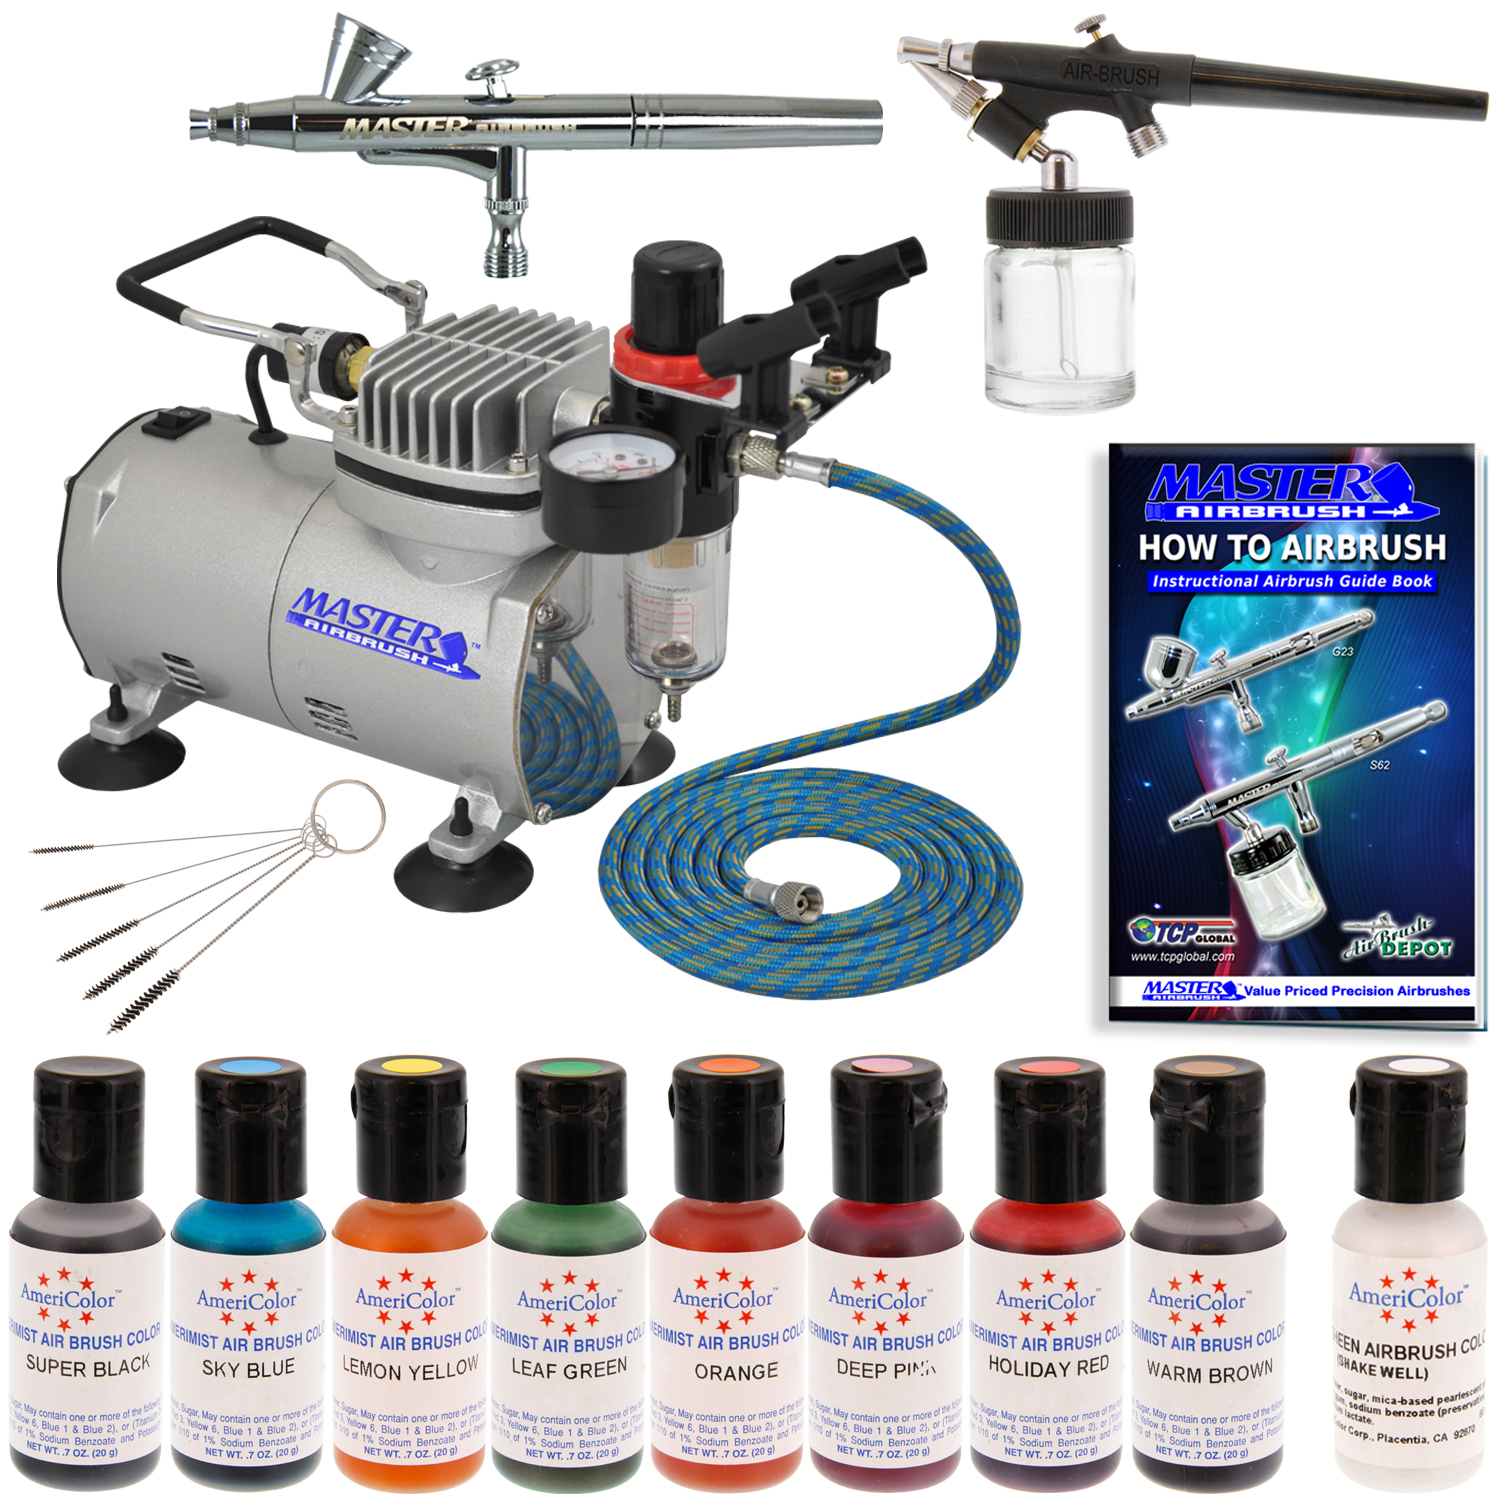 TCP GLOBAL CORP 2 AIRBRUSH CAKE DECORATING KIT Compressor 8 Color Americolor Food Coloring Set at Sears.com